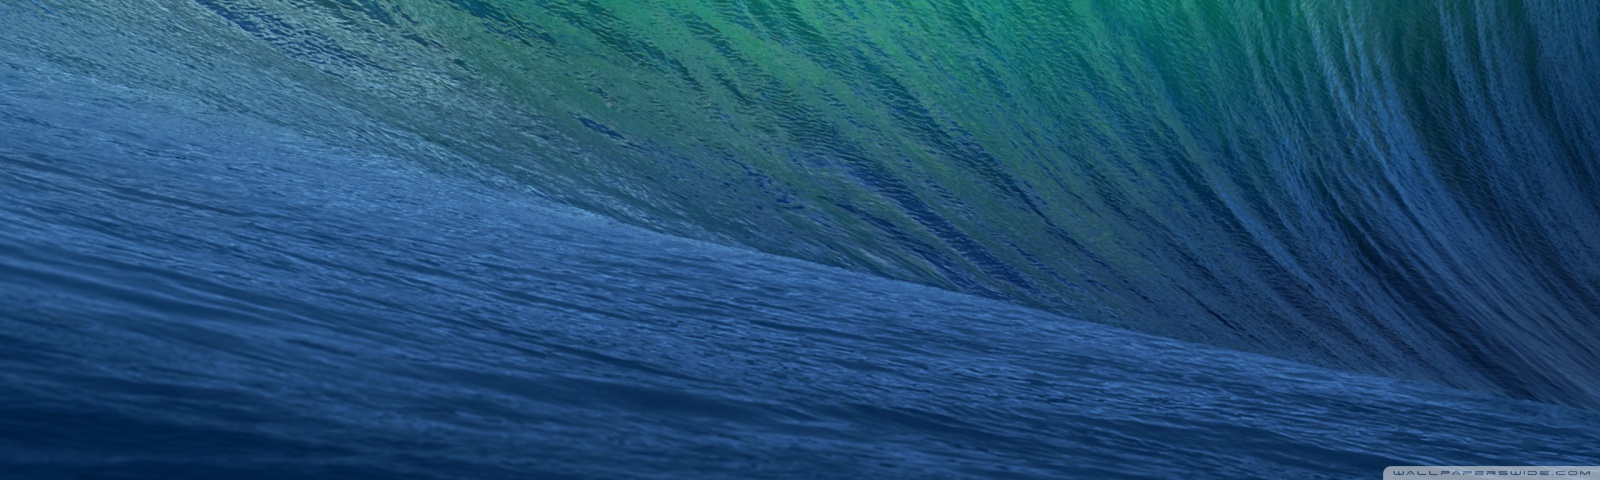 X 1080p Background Os Mavericks